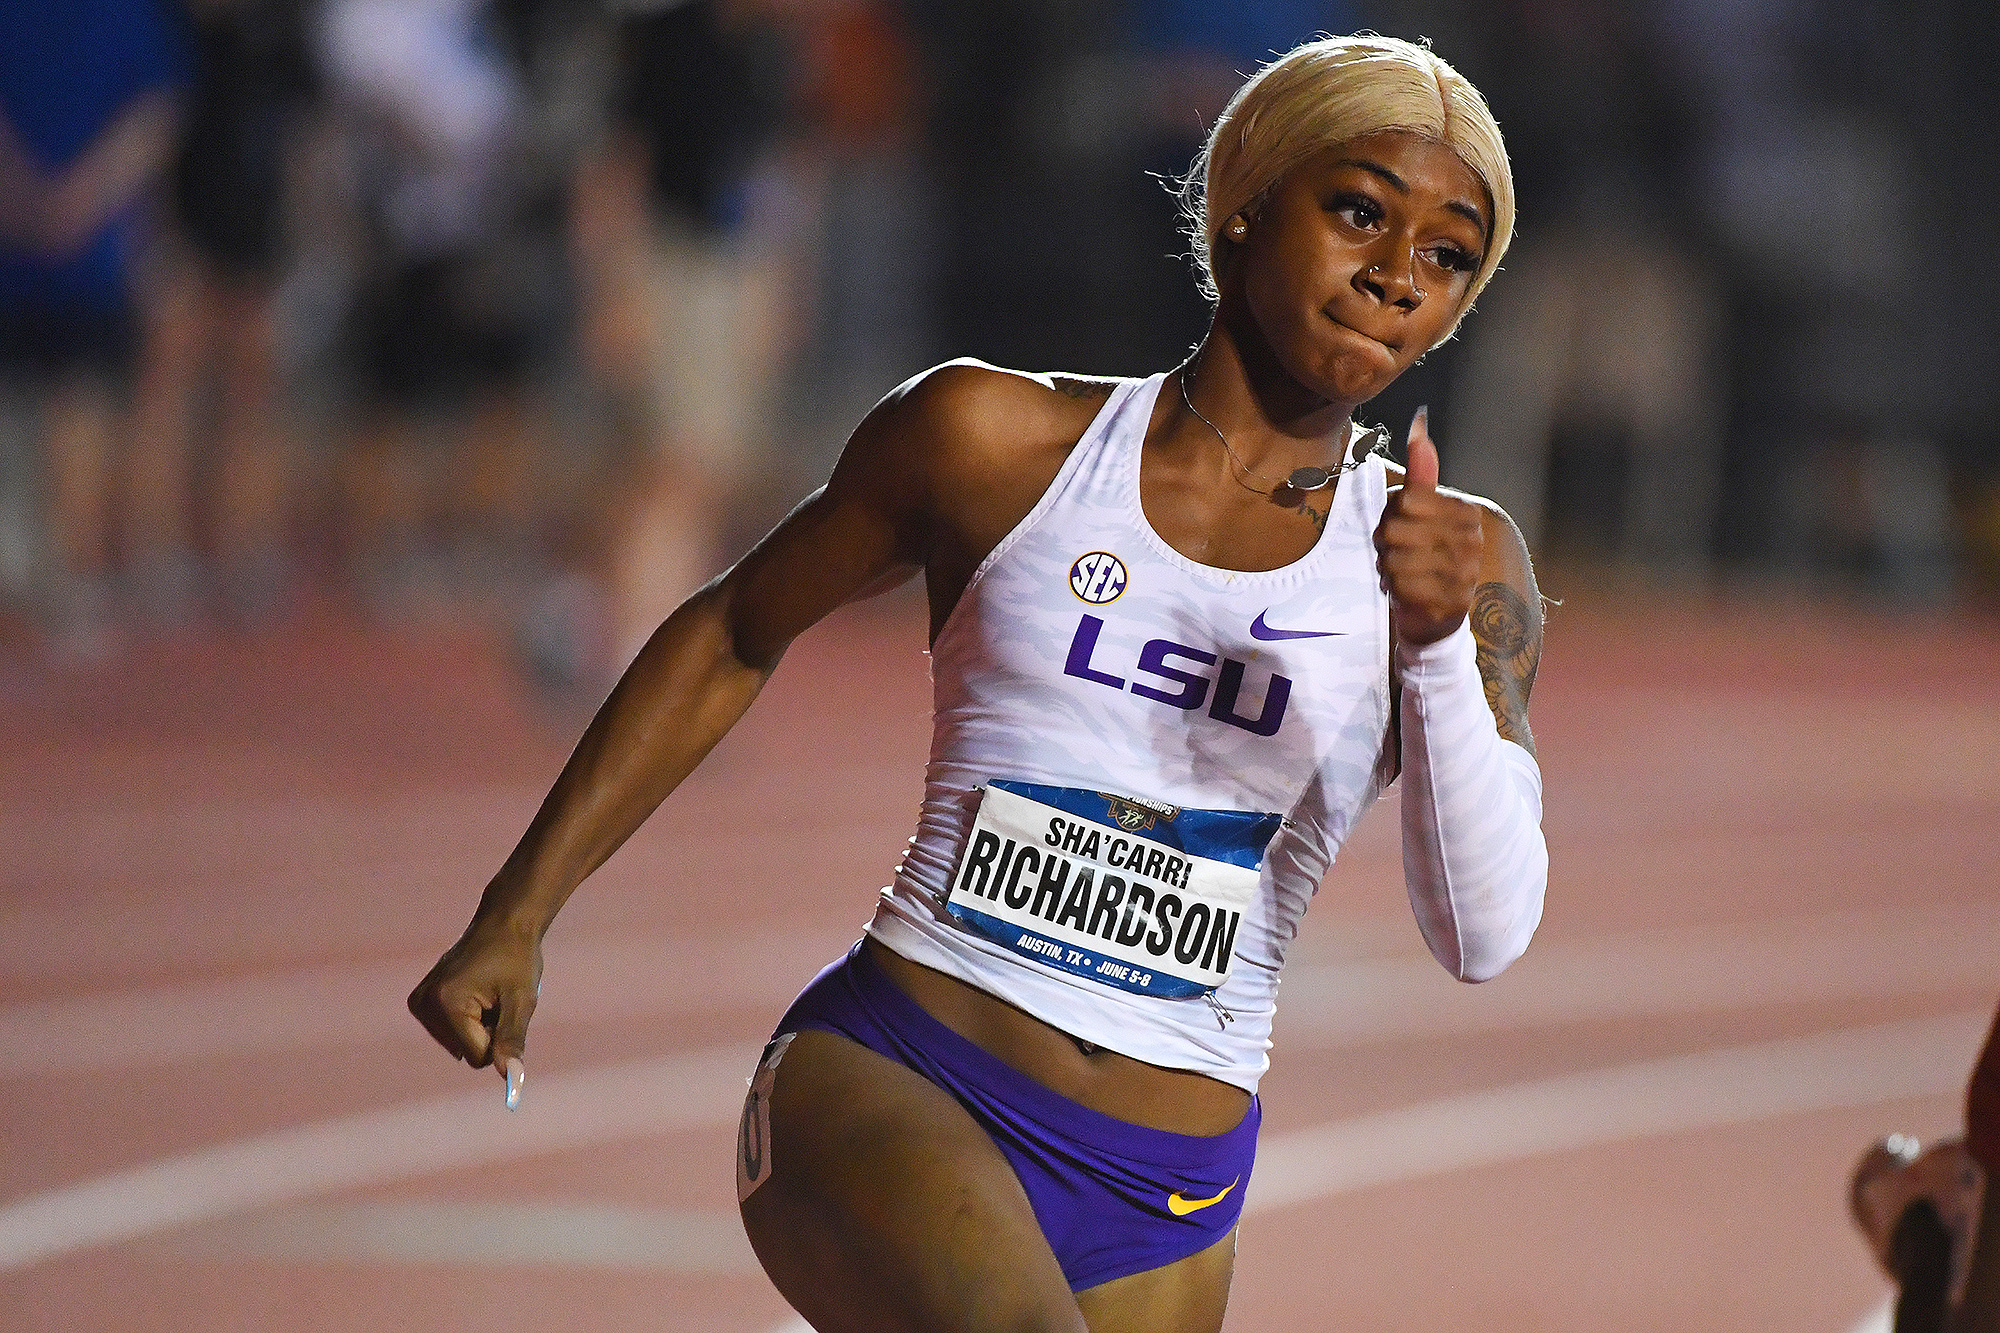 What to Know About Olympic Track Athlete Sha'Carri Richardson   PEOPLE.com